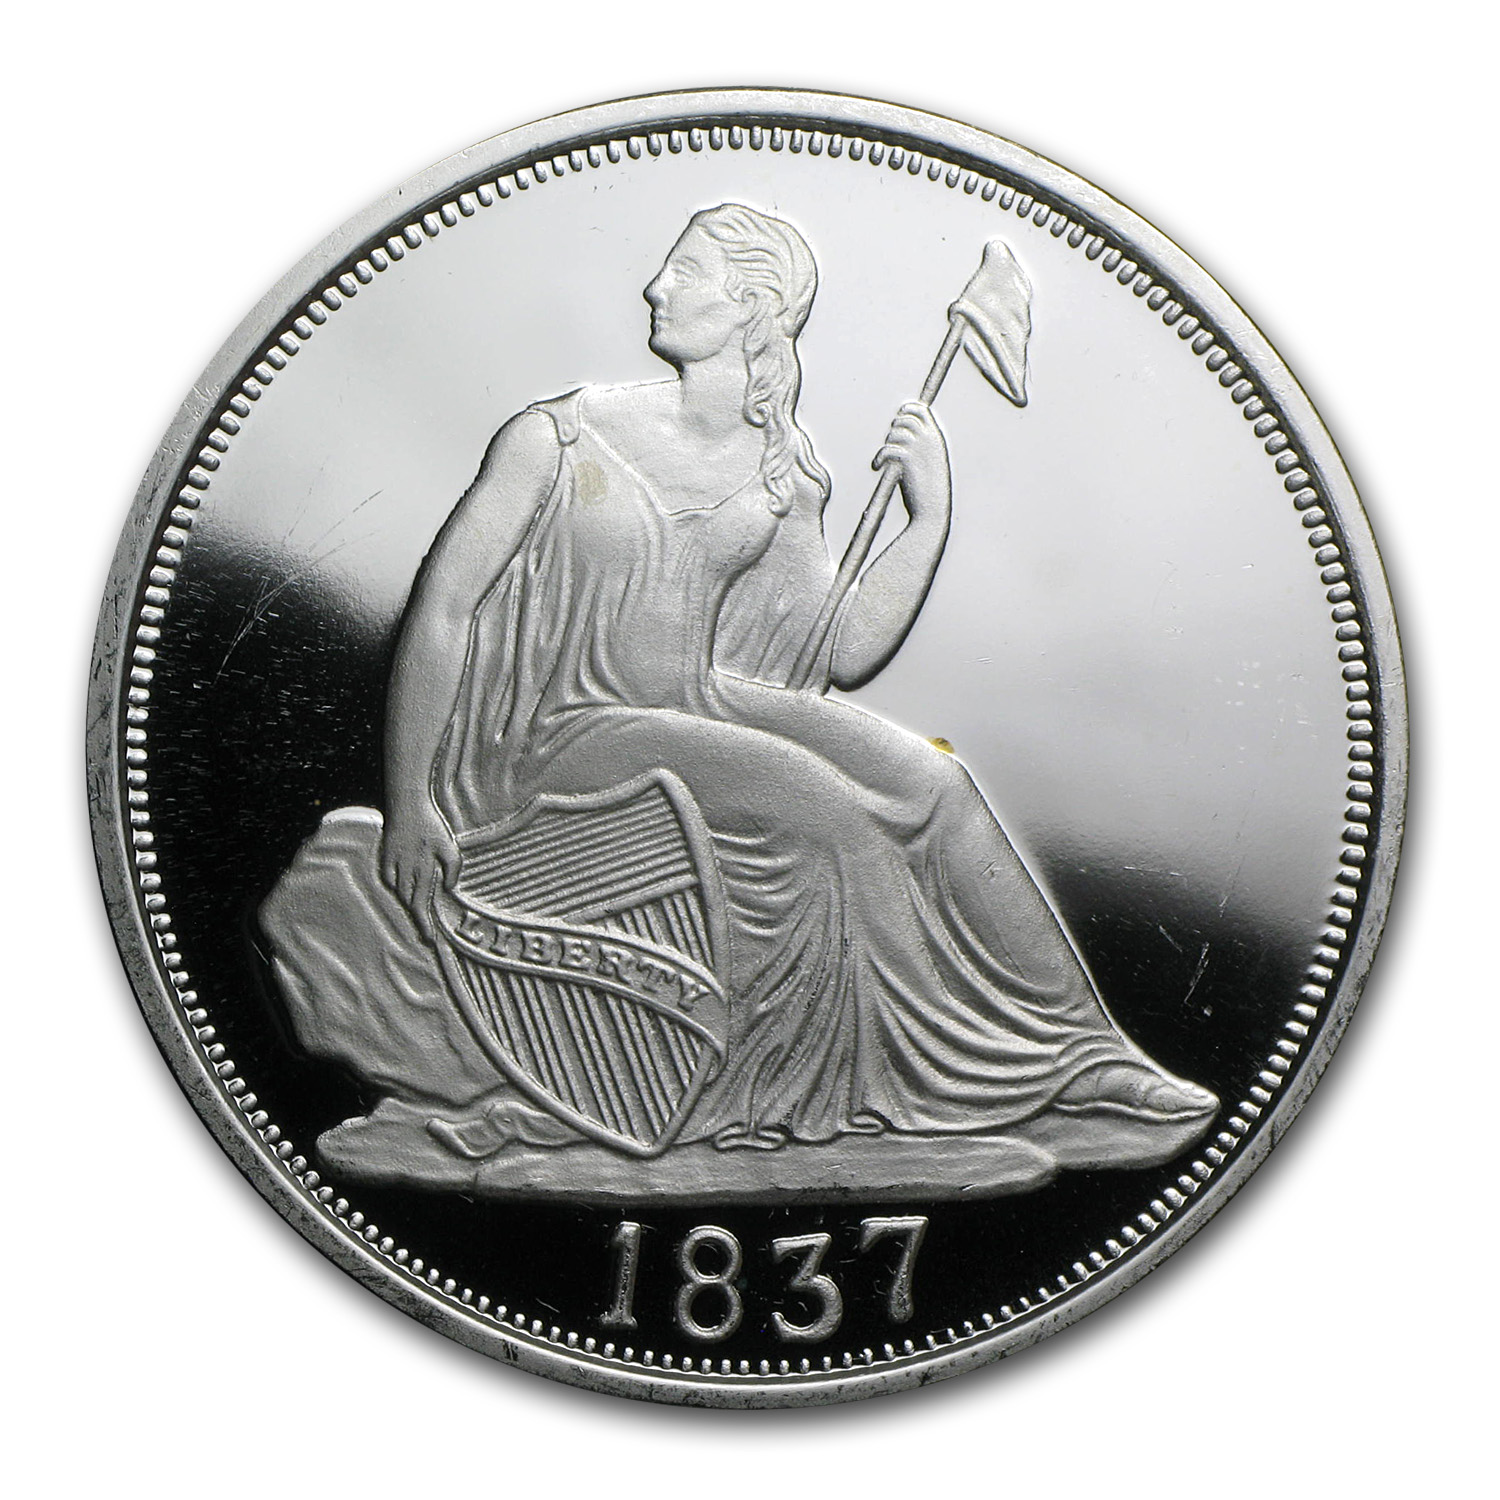 2 oz Silver Round - Seated Dime (Replica)